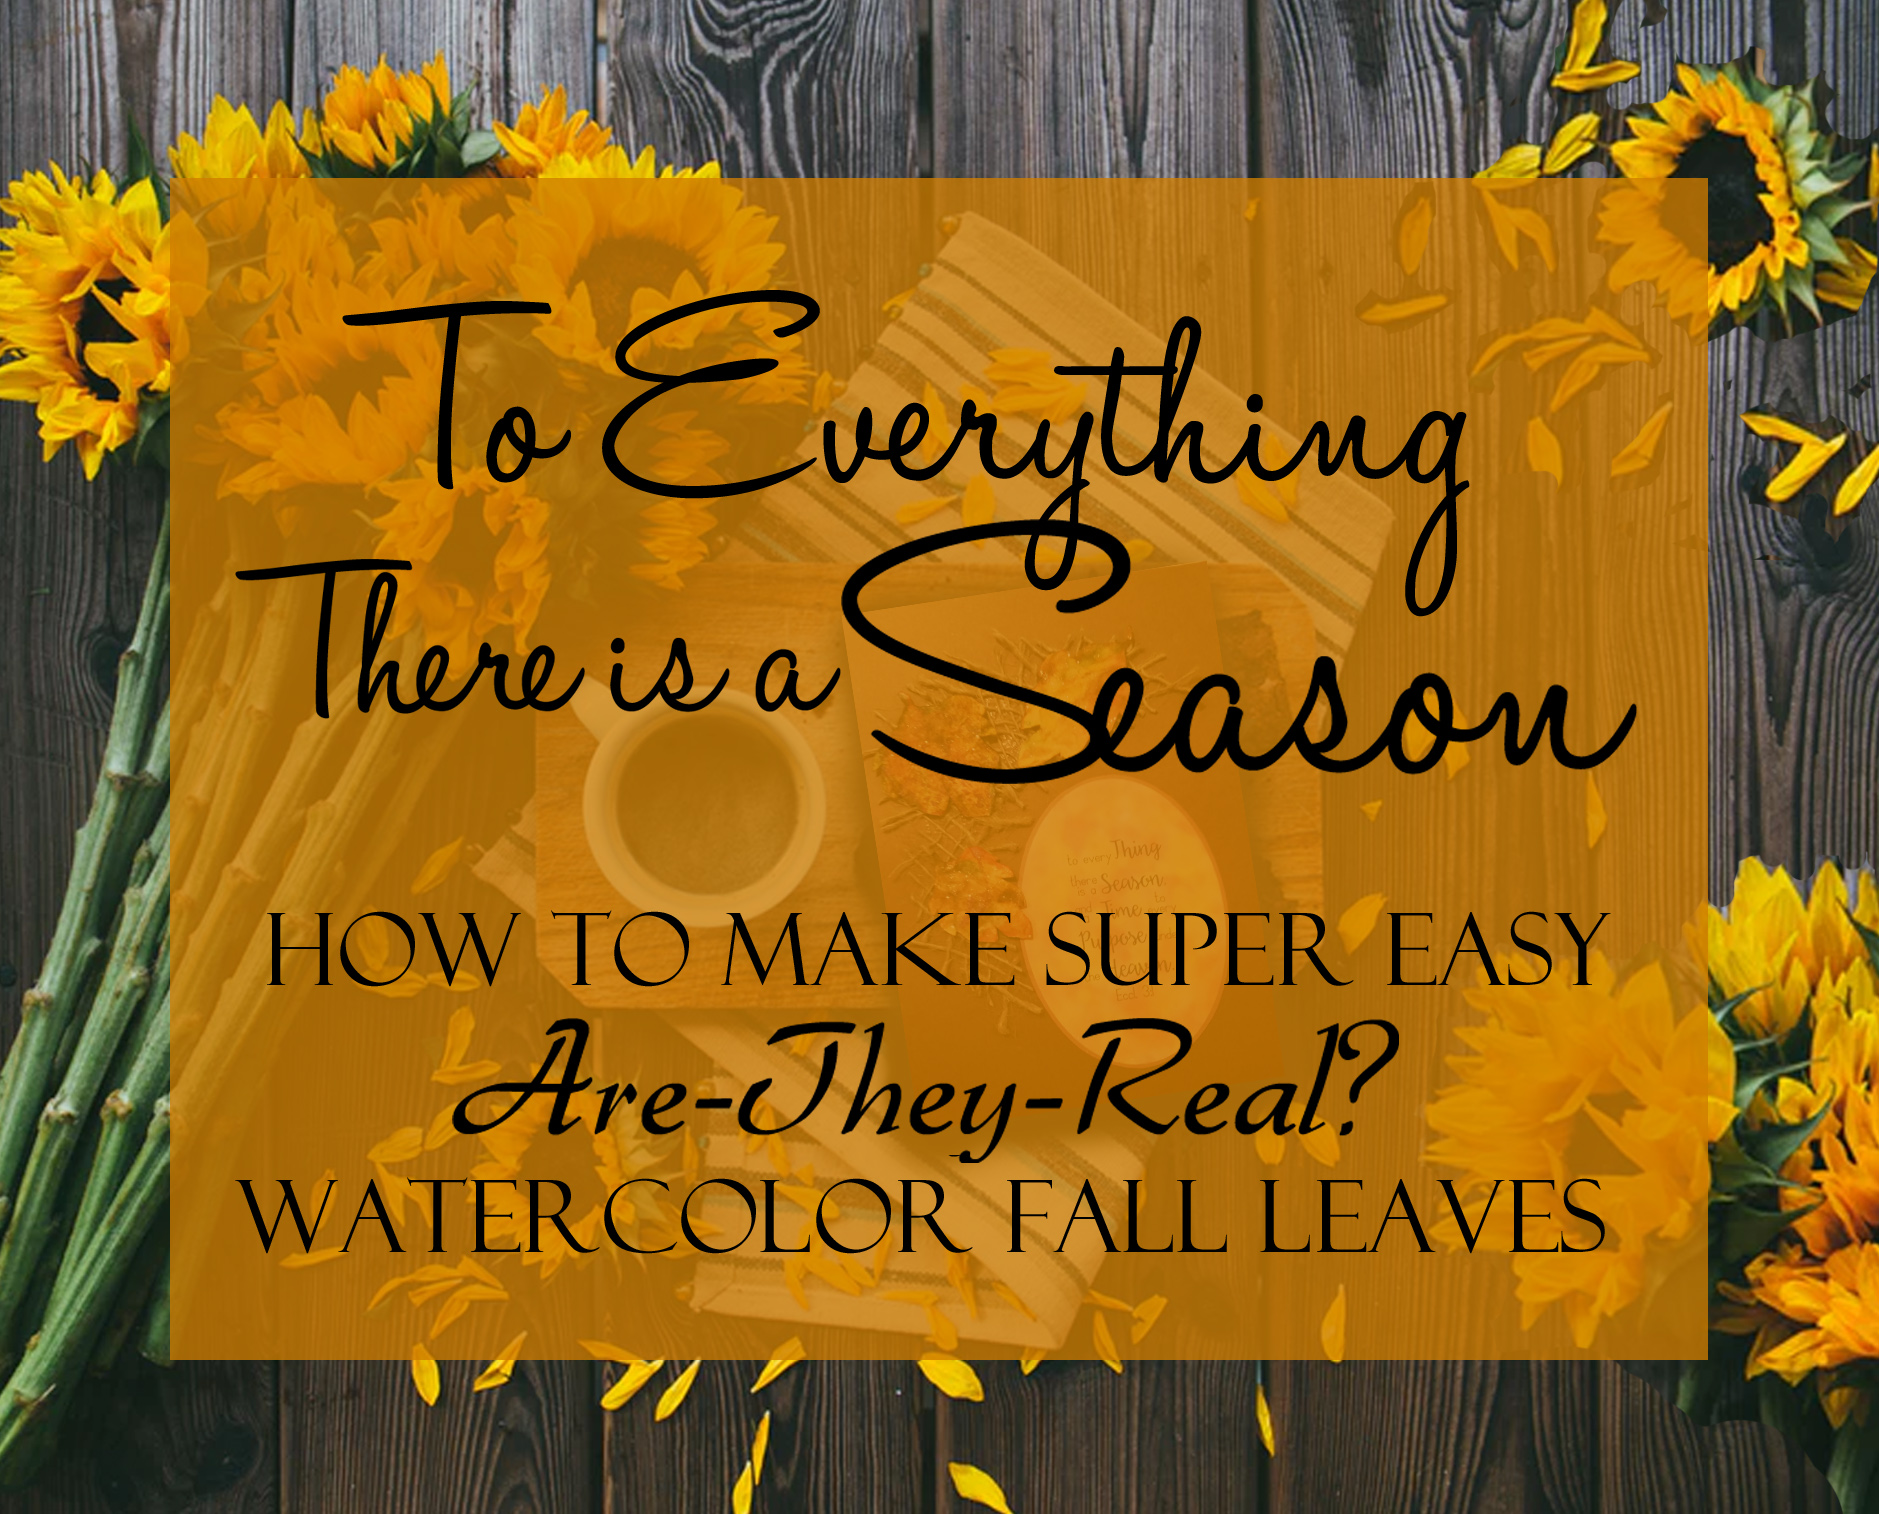 How To Make Super Easy Watercolor Fall Leaves